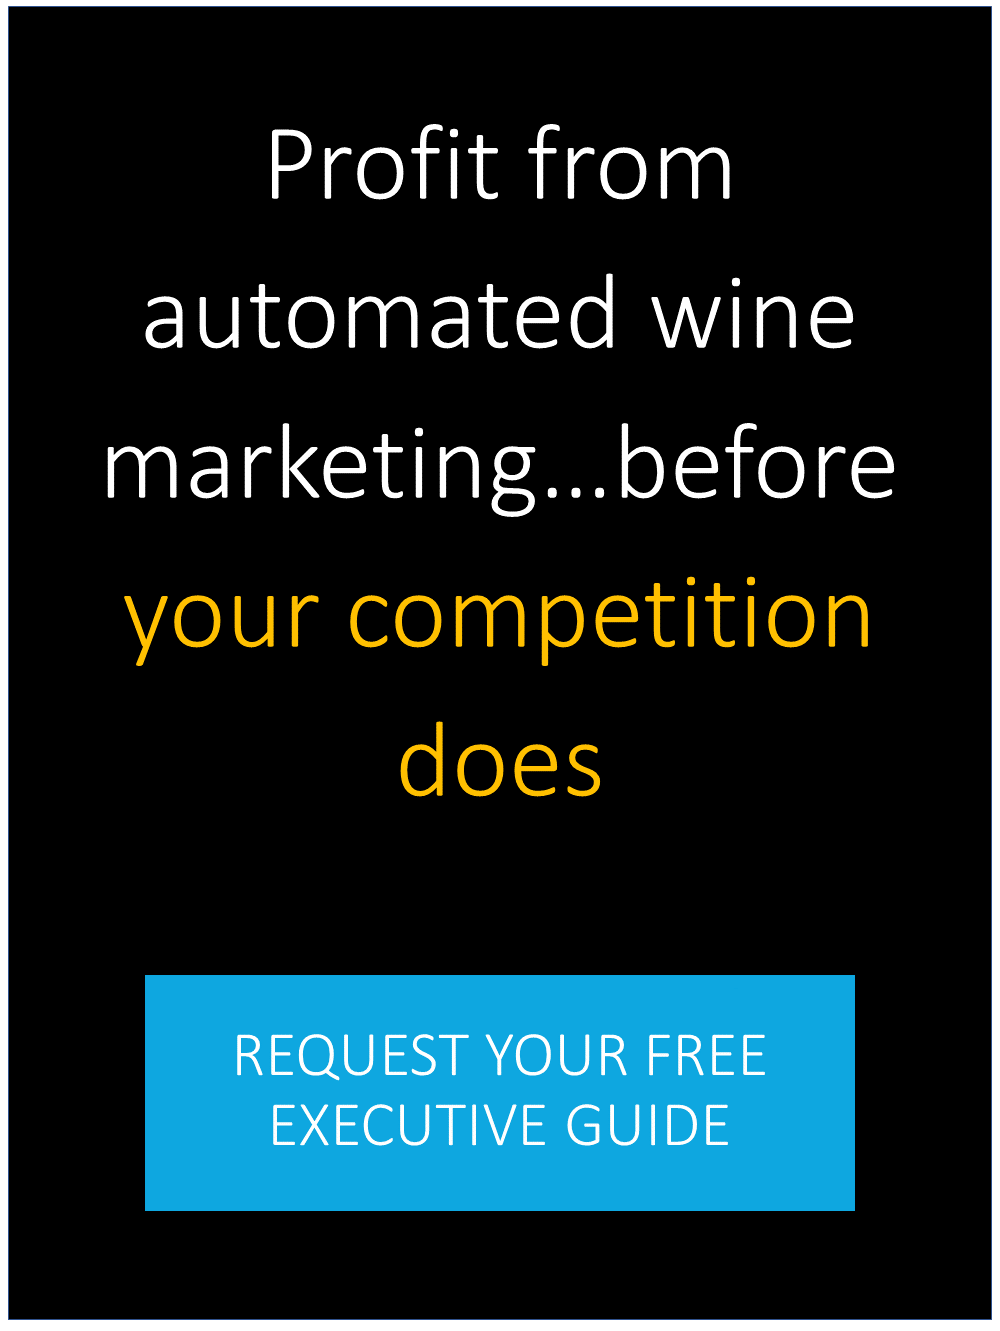 Profit from automated wine marketing…before your competition does!  REQUEST YOUR FREE EXECUTIVE GUIDE